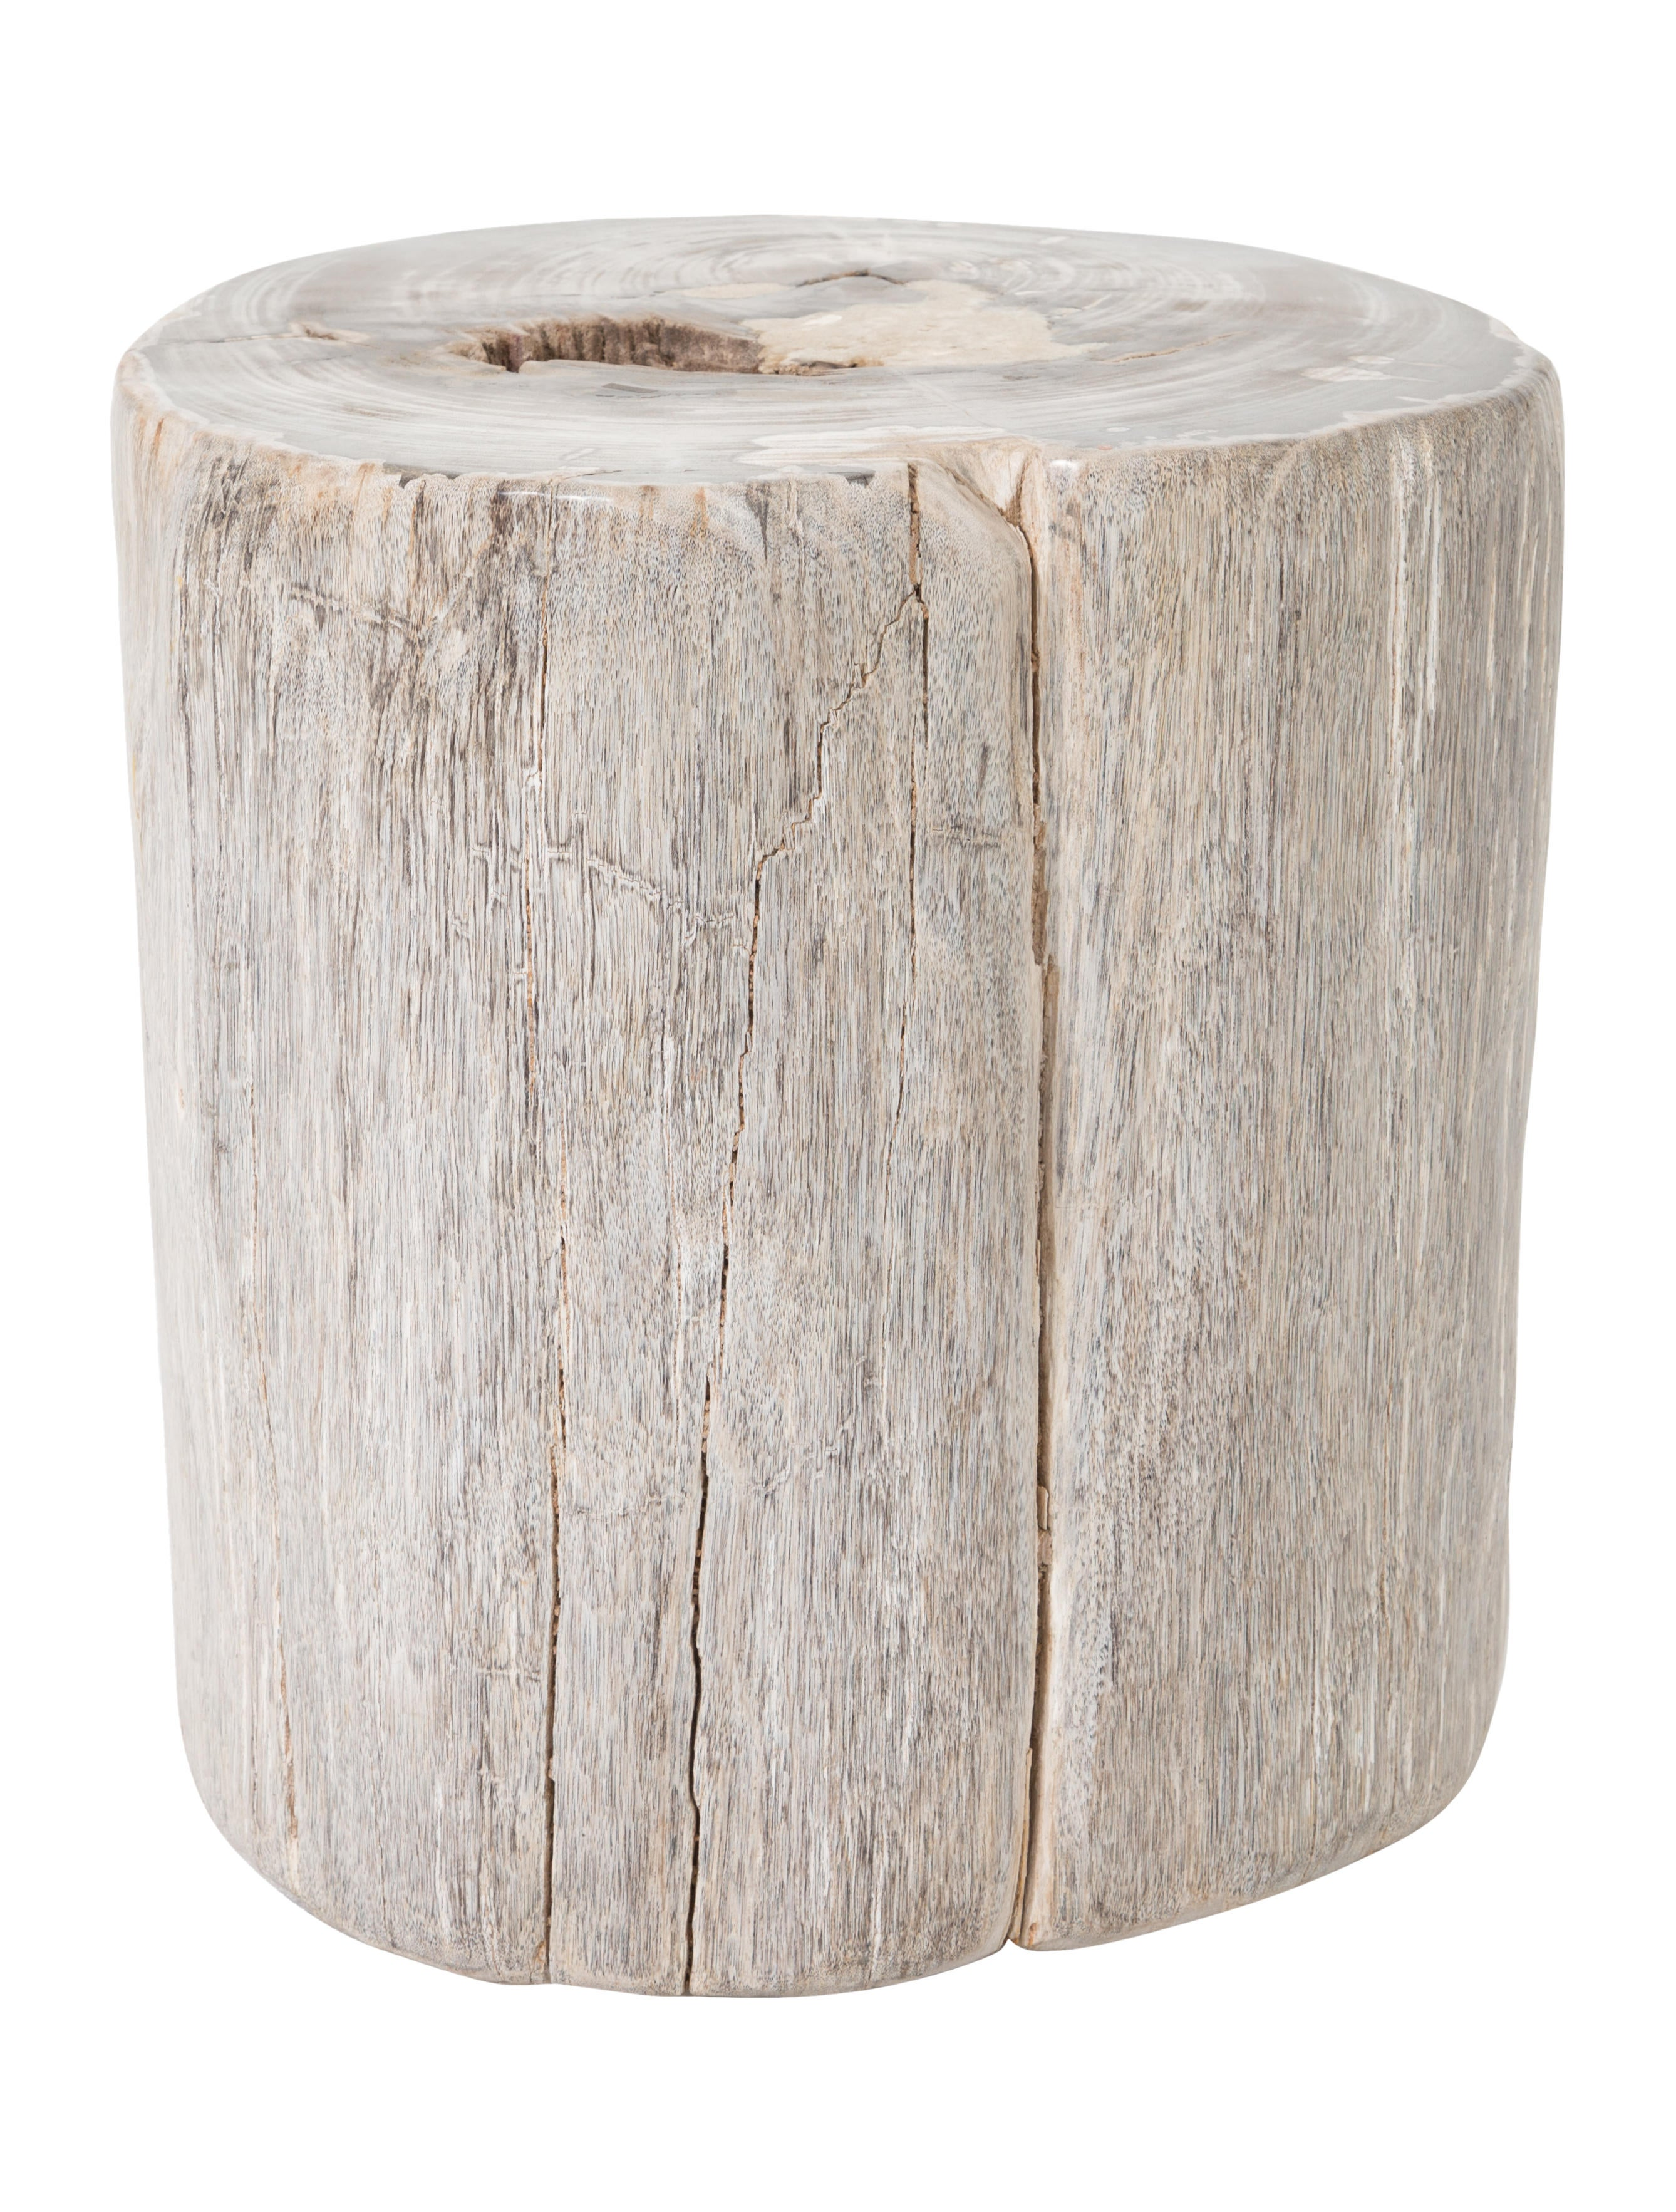 Ralph lauren petrified wood tree stump side table for Petrified wood furniture for sale